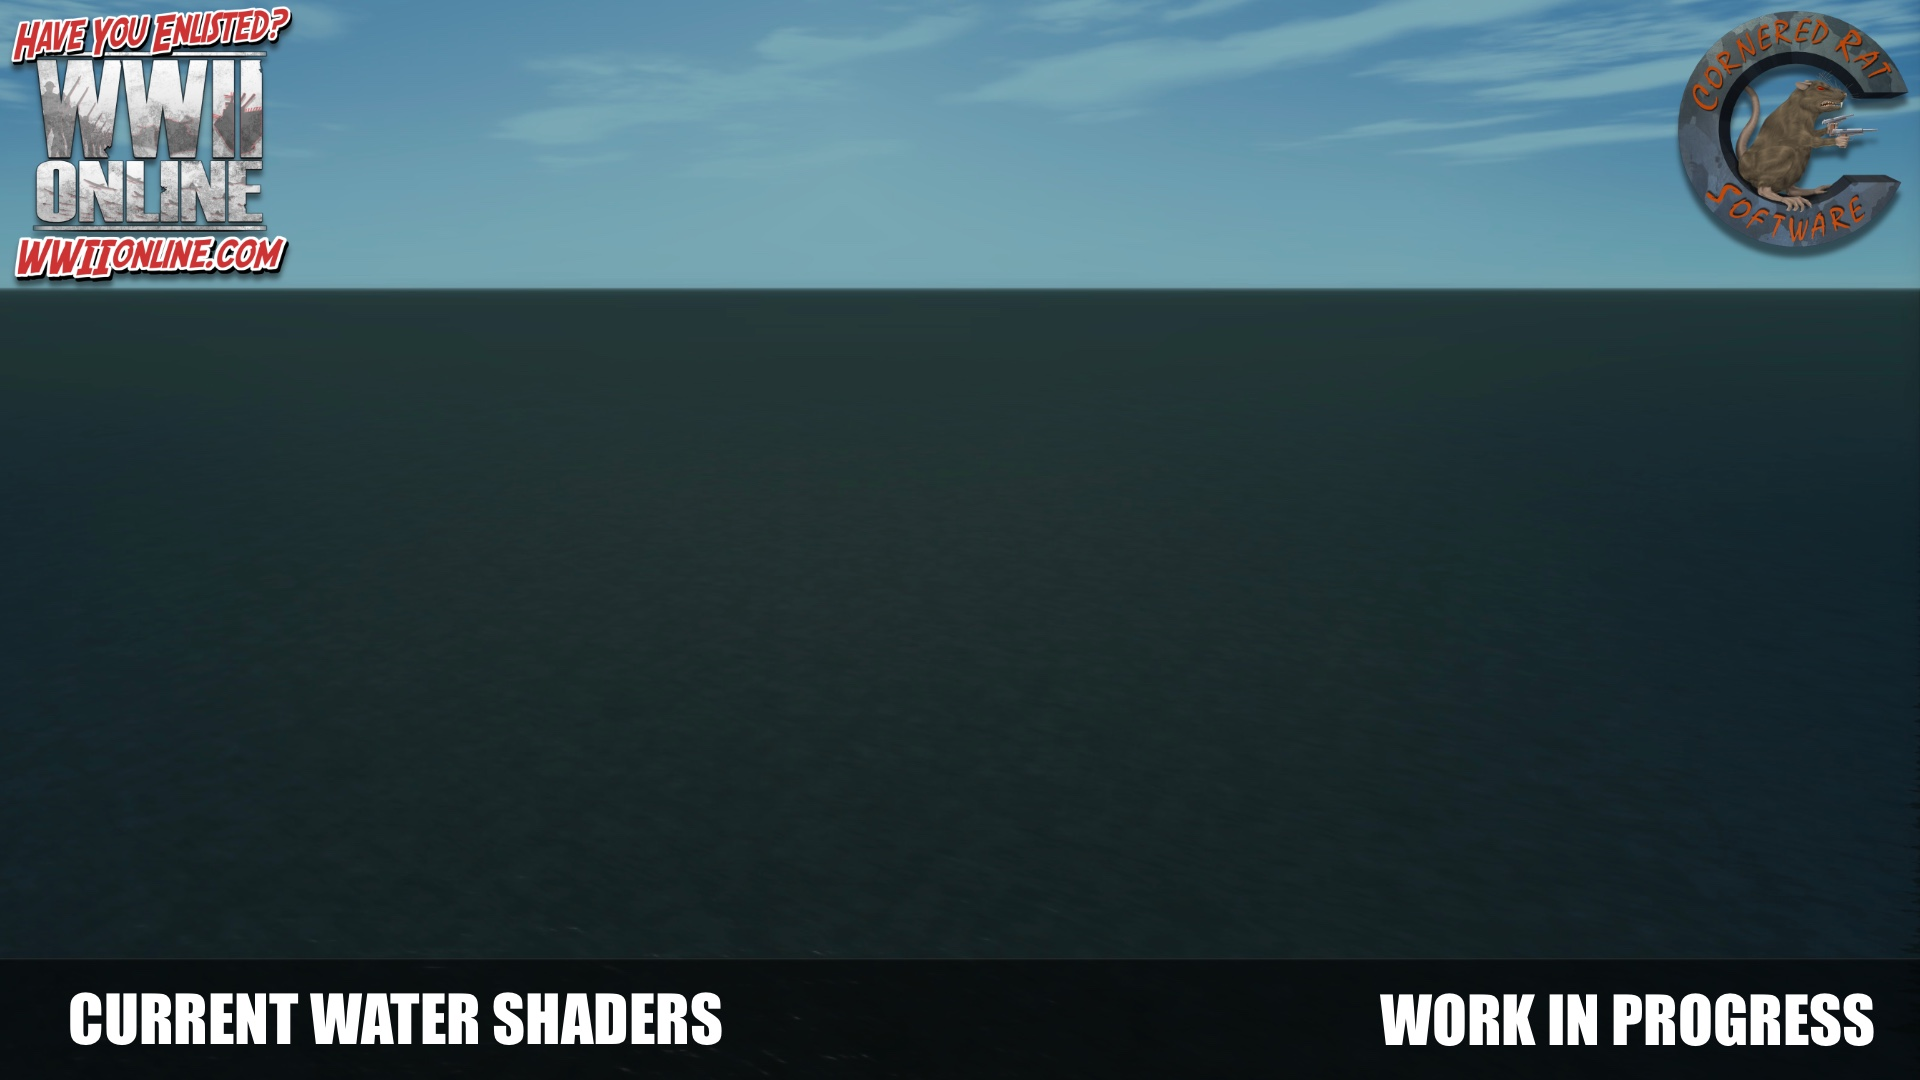 Current water shaders